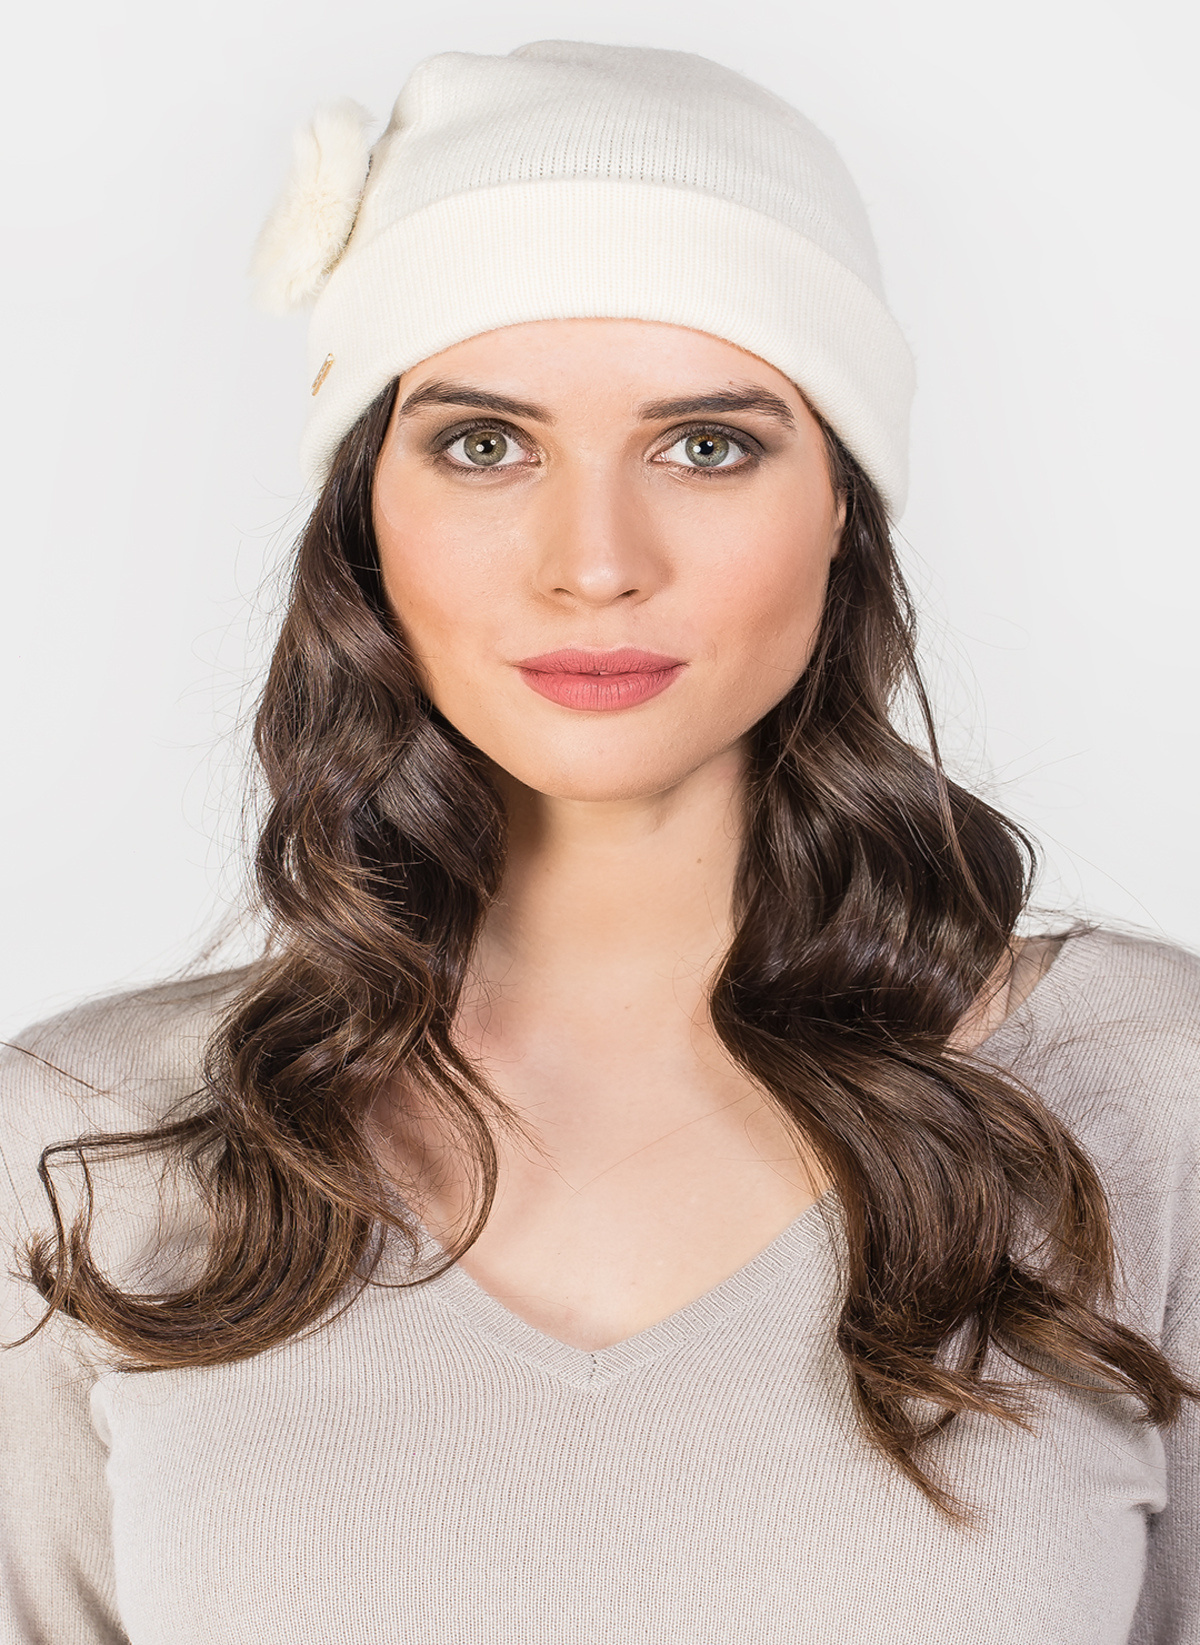 Silk And Cashmere Bere A181c330002 Ayala Hat With Fur 17wkyl-17 – 265.0 TL